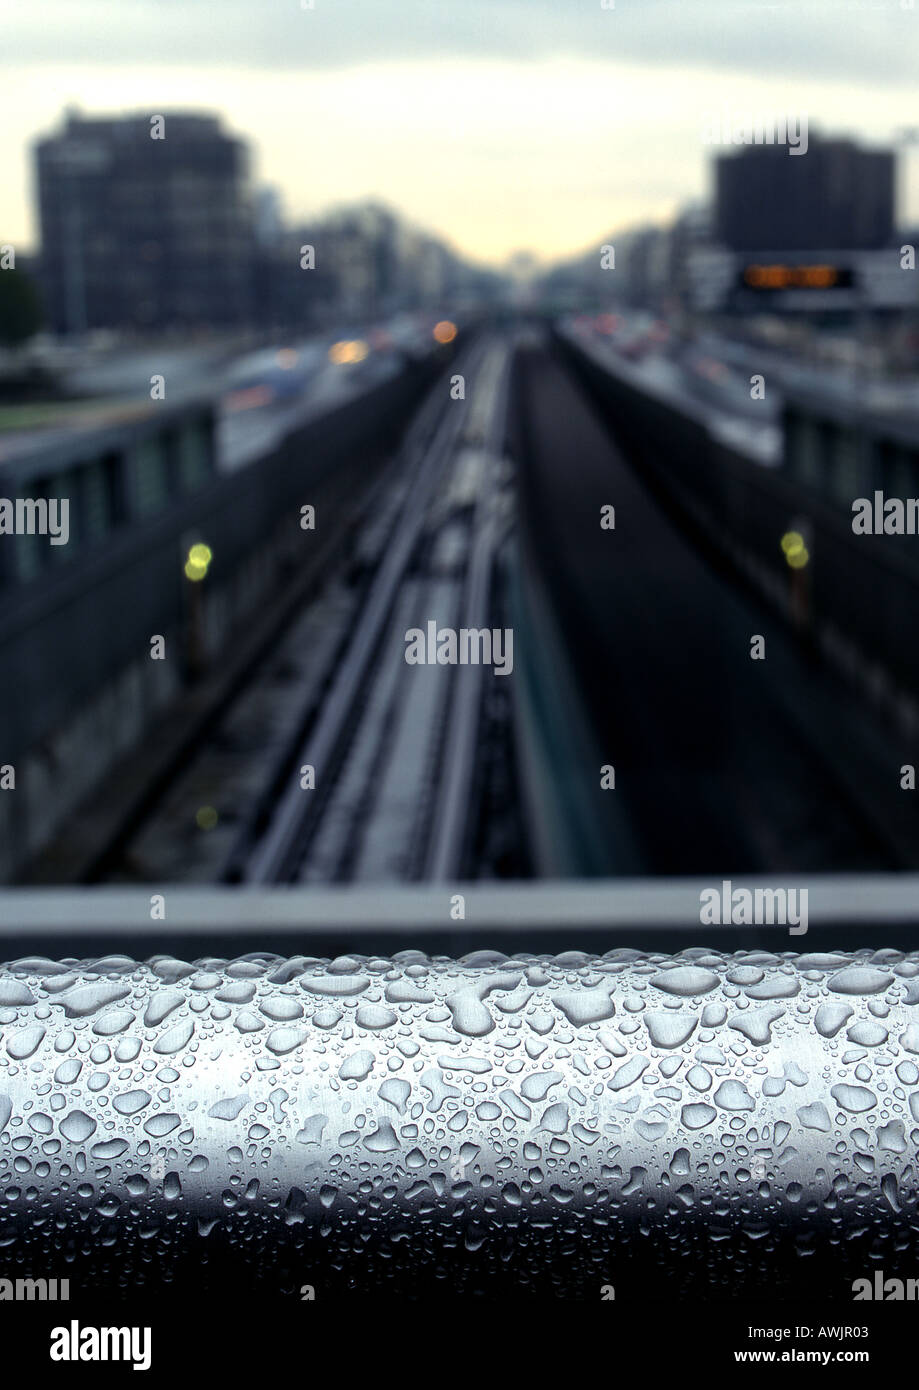 Water drops on rail overlooking traintracks - Stock Image